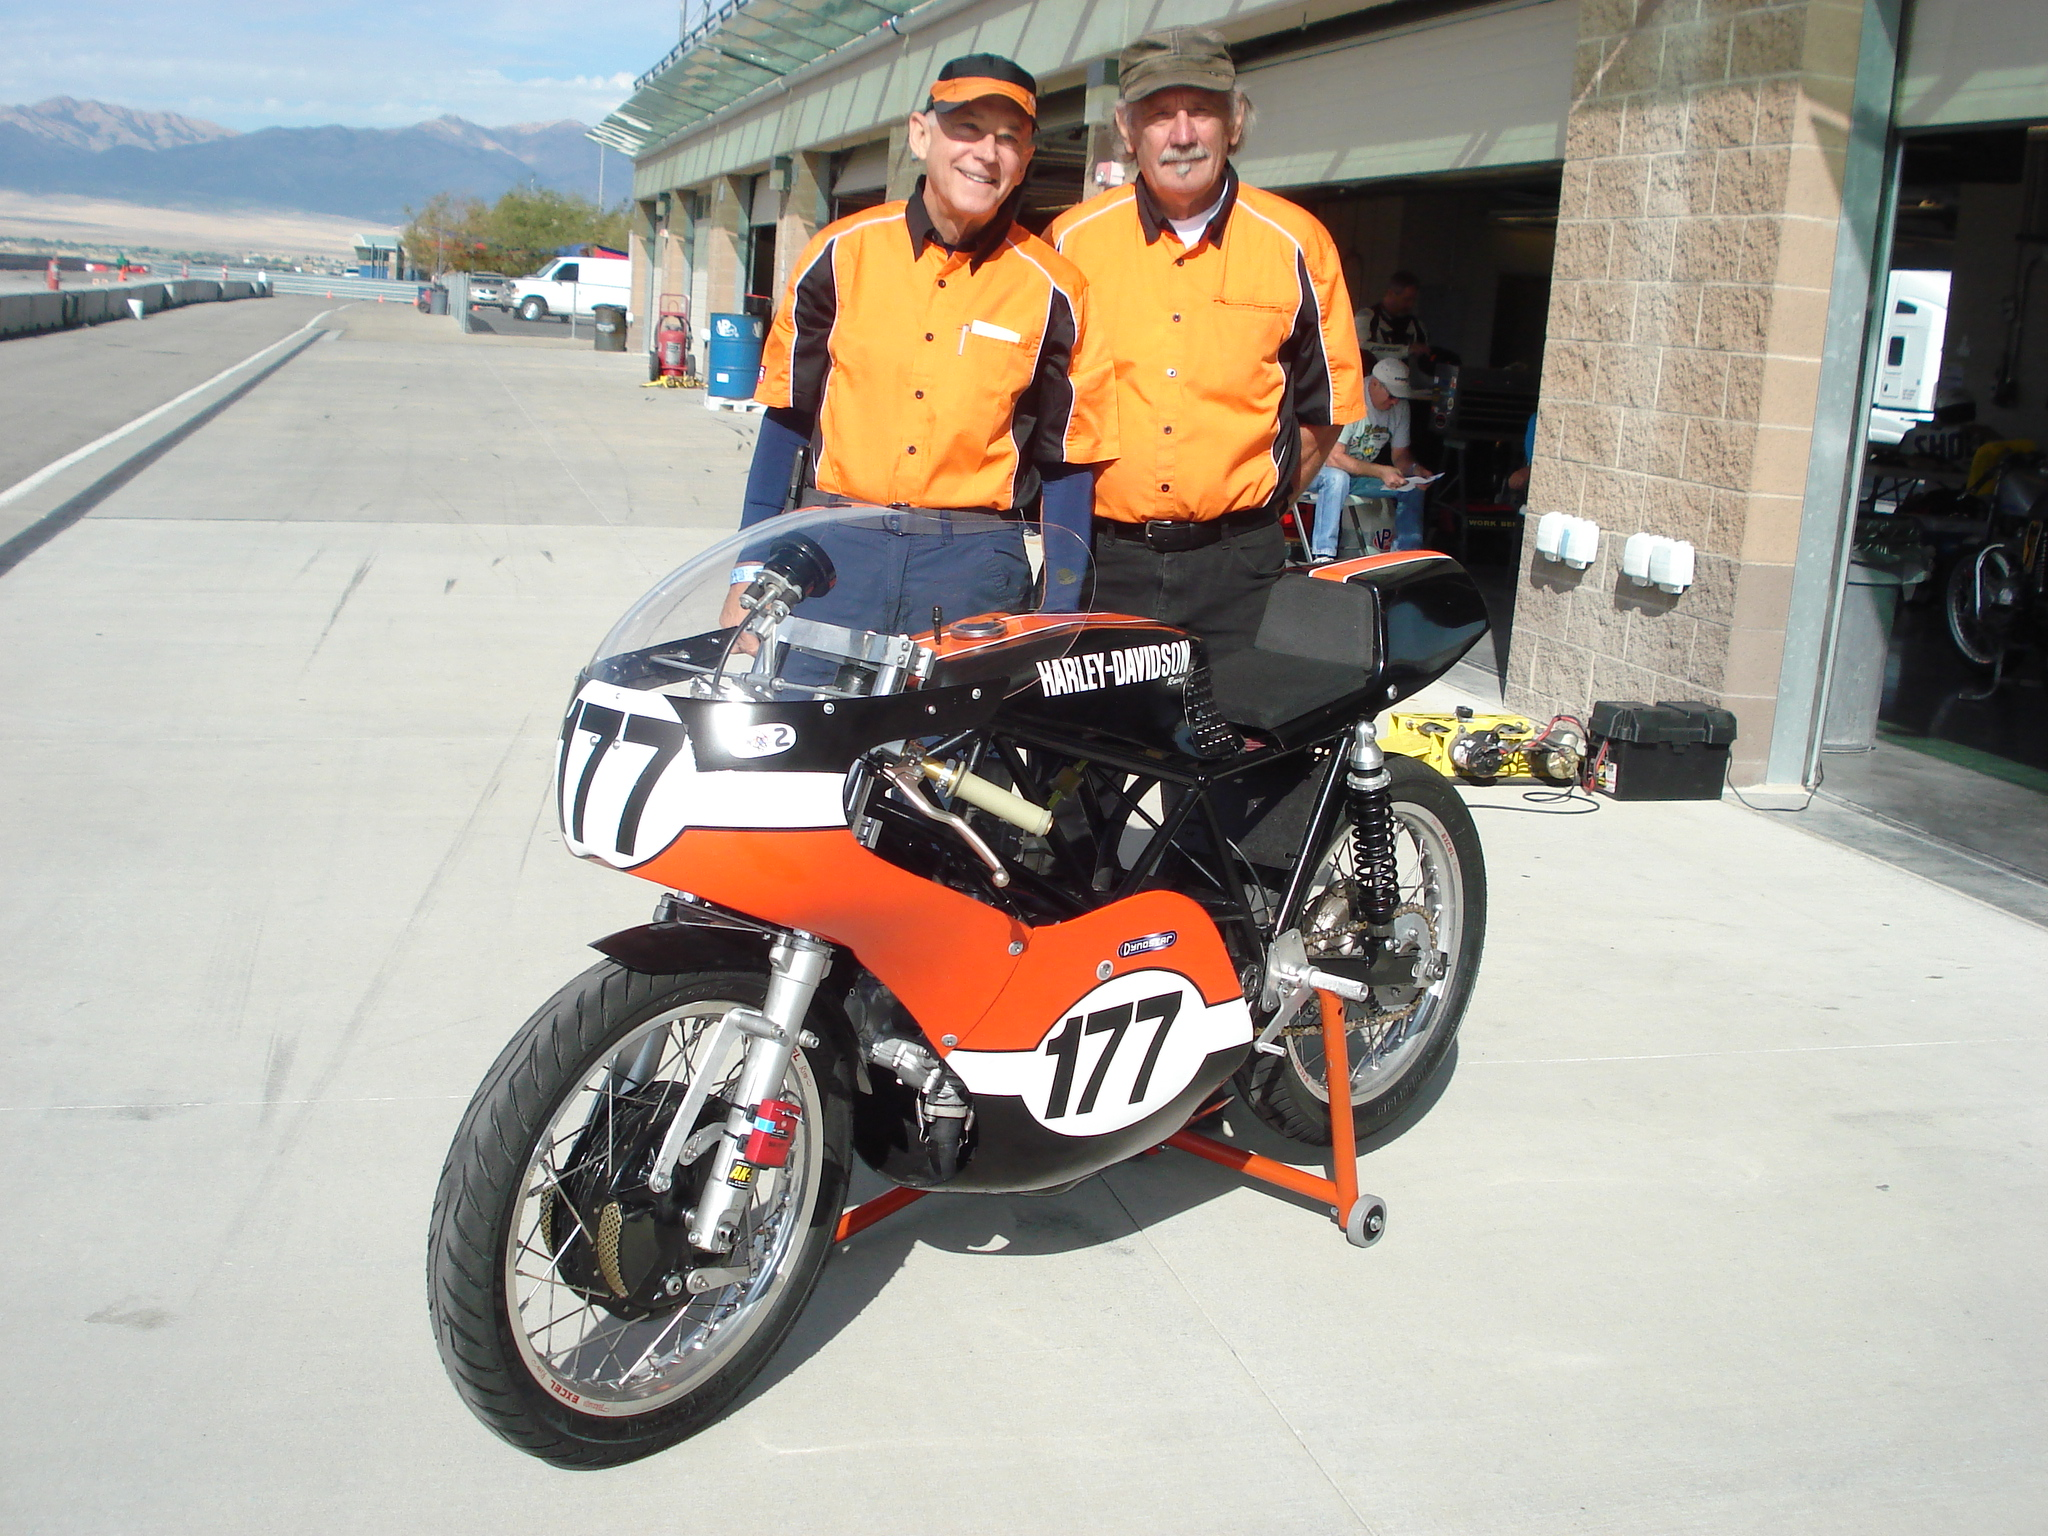 Walt Fulton (left) and Karl Engellenner (right) at Miller Motorsports Park a few years ago. The bike is Karl's 350 Aermacchi that Walt rides.